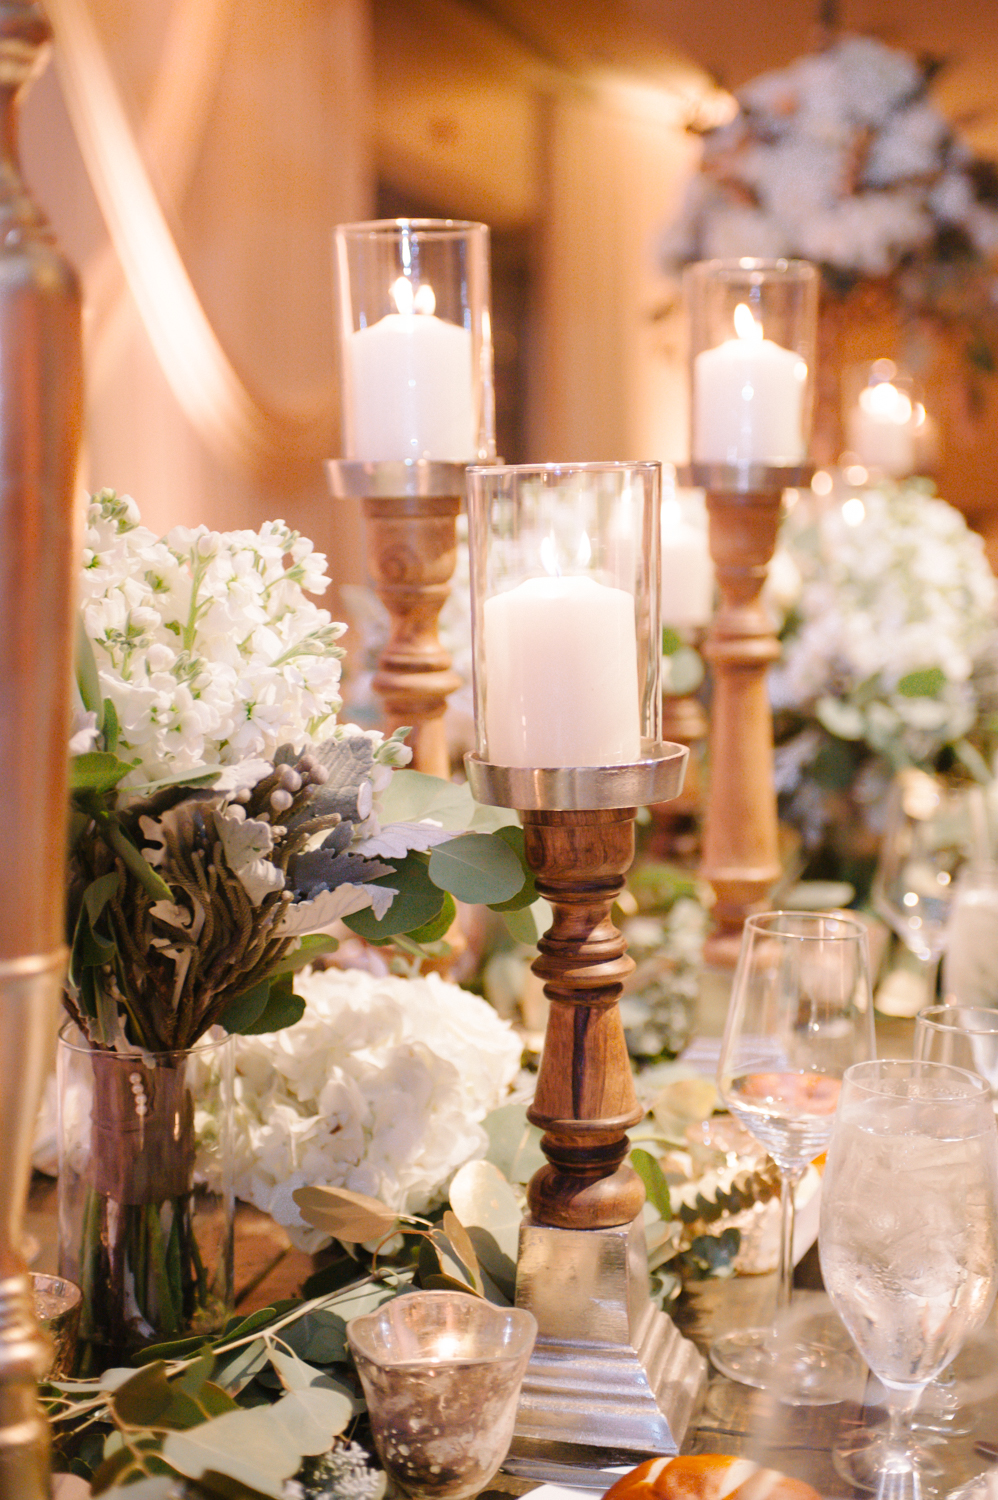 Events Simply Floral, Gwen Hotel Chicago, Chicago luxury wedding photographer Erica Robnett Photography